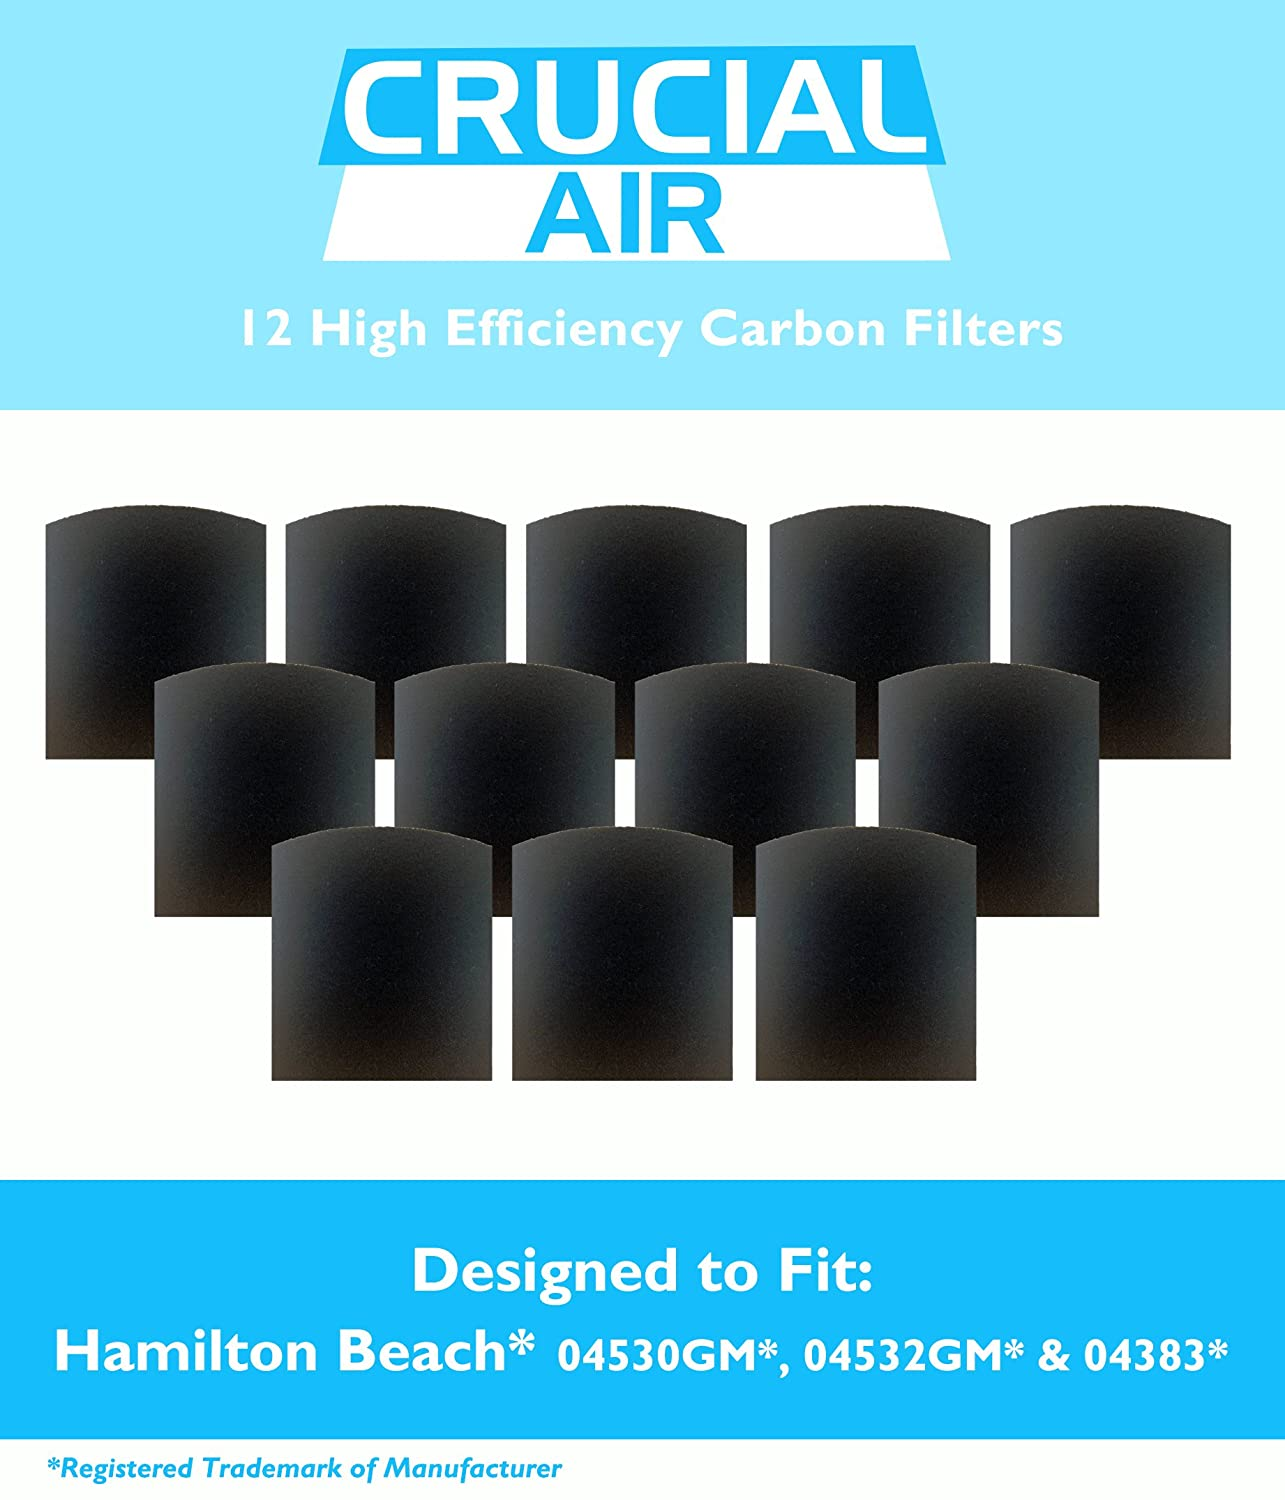 12 Crucial Air Replacement Carbon Filters for Hamilton Beach True Air Odors  04530GM 04532GM 04383 04531GM